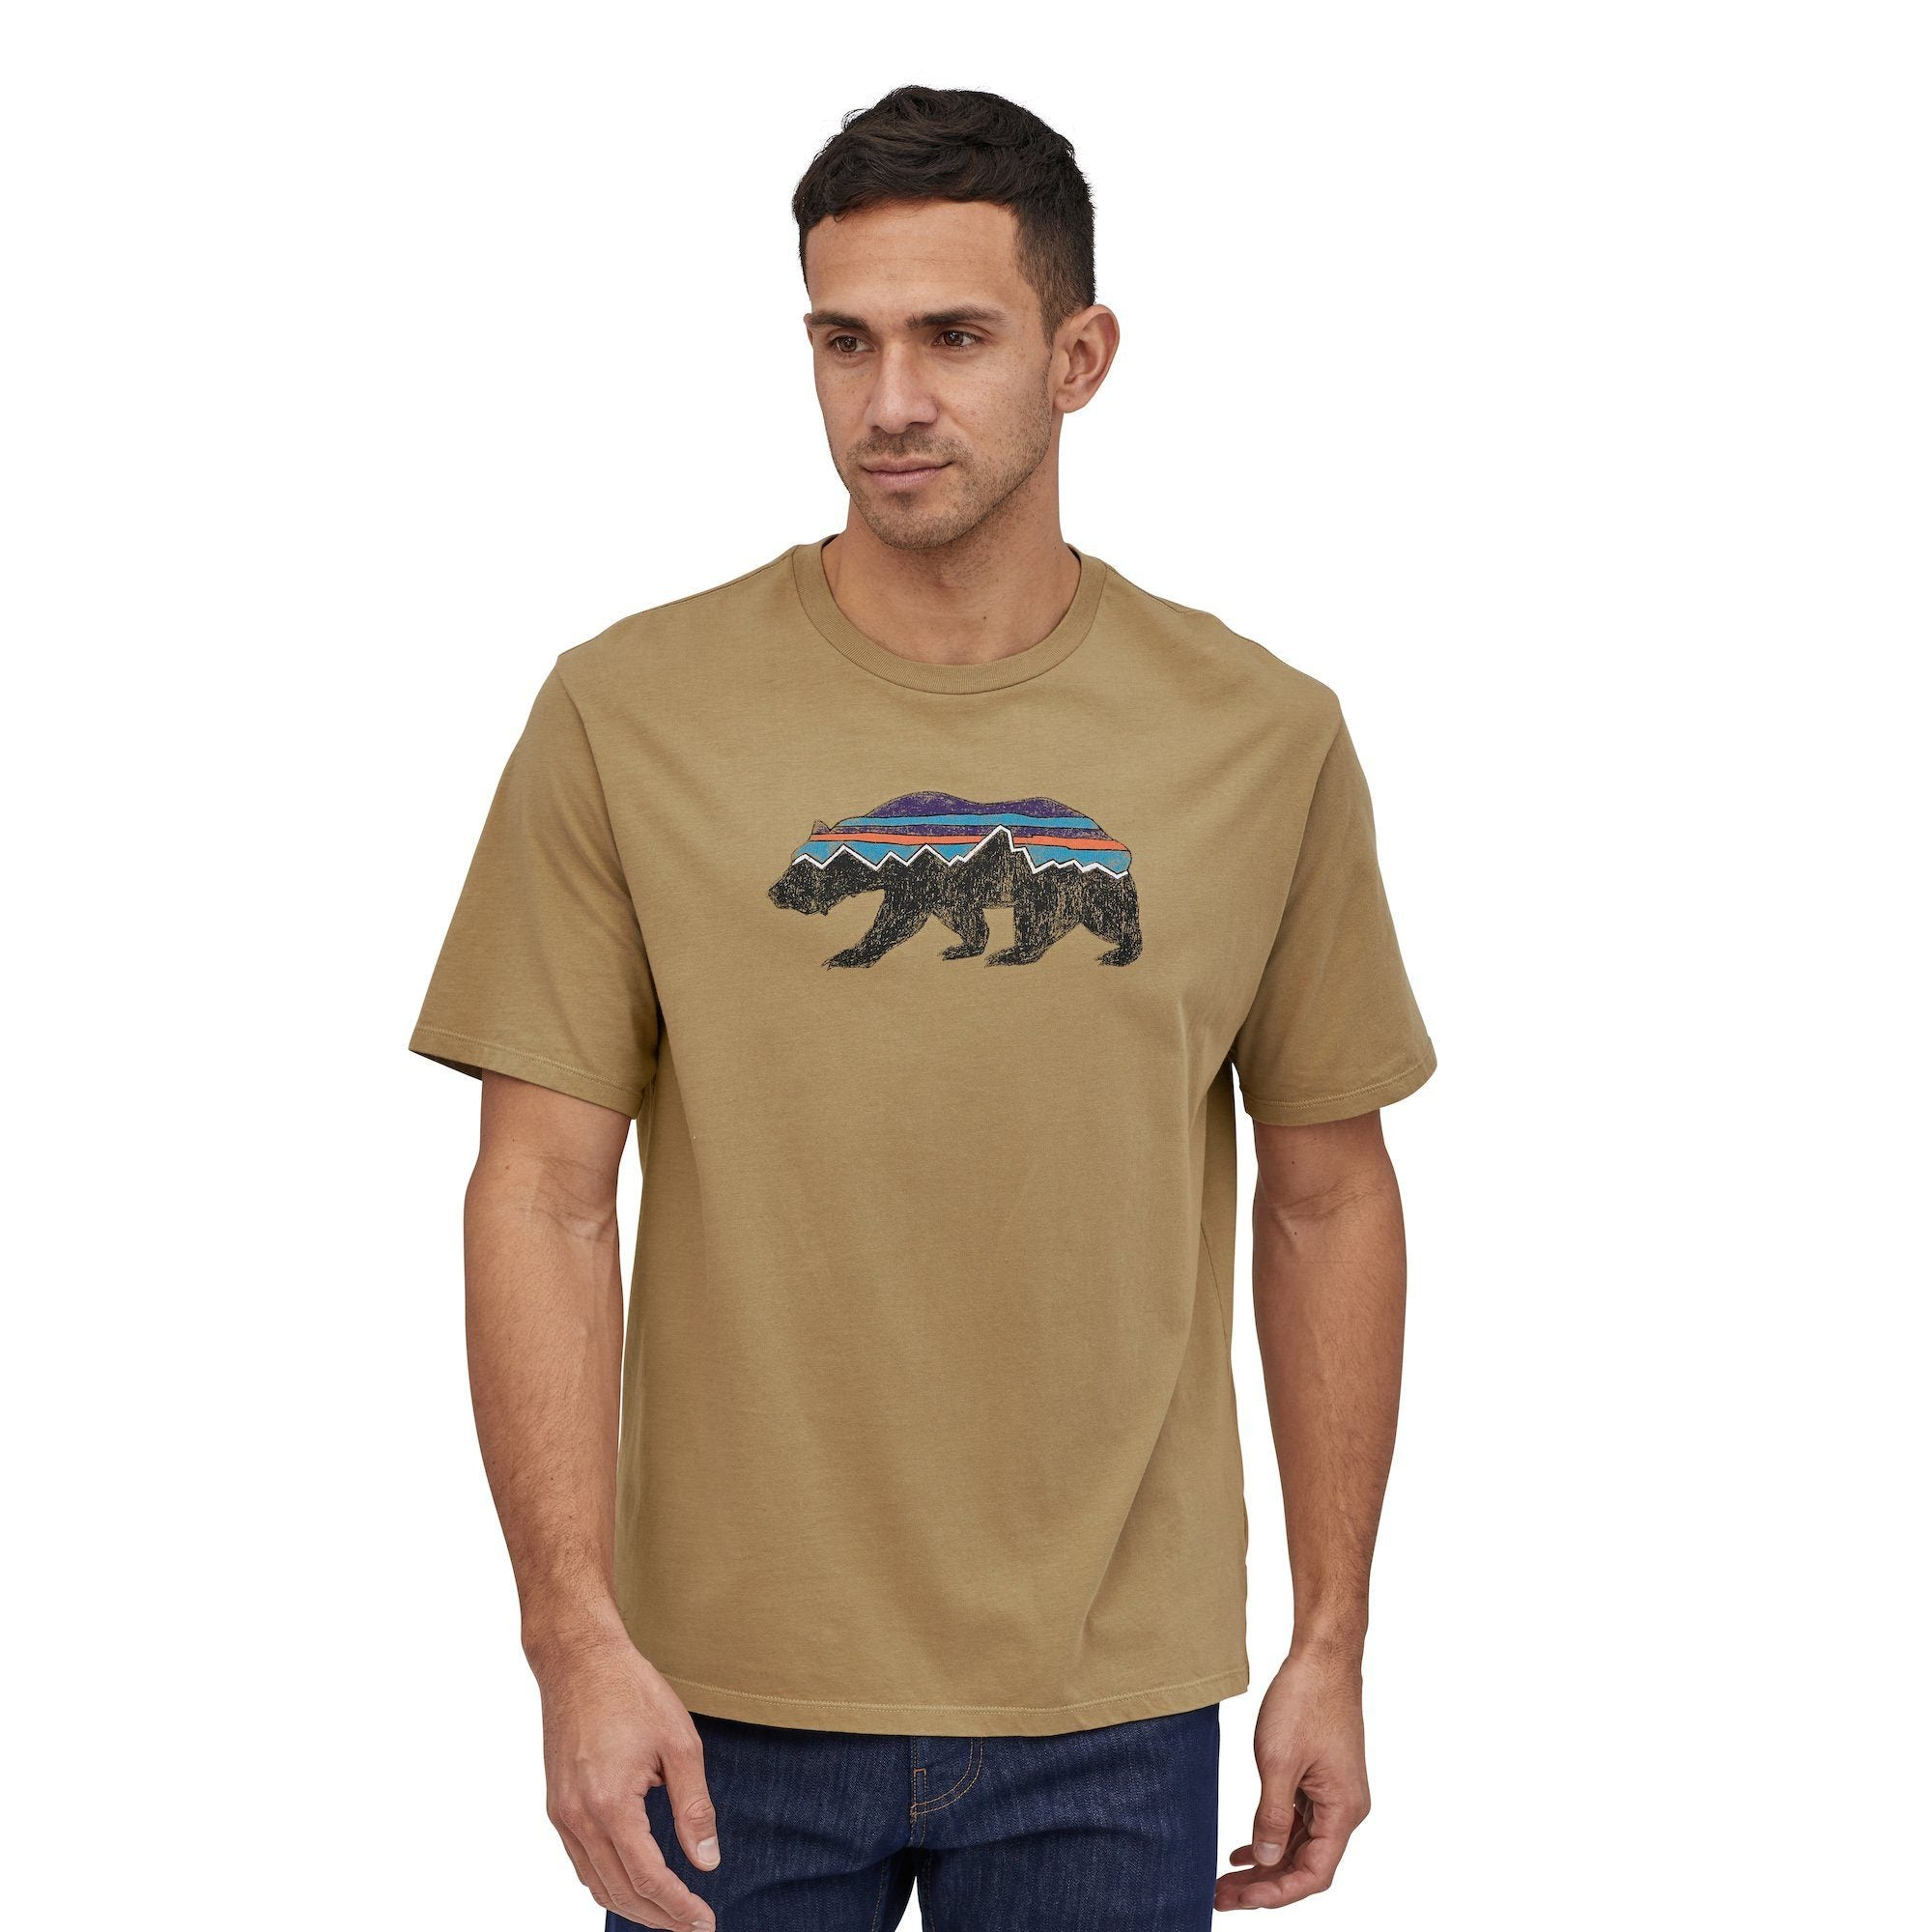 Patagonia - Fitz Roy Bear Organic Cotton T-Shirt - Organic Cotton - Weekendbee - sustainable sportswear